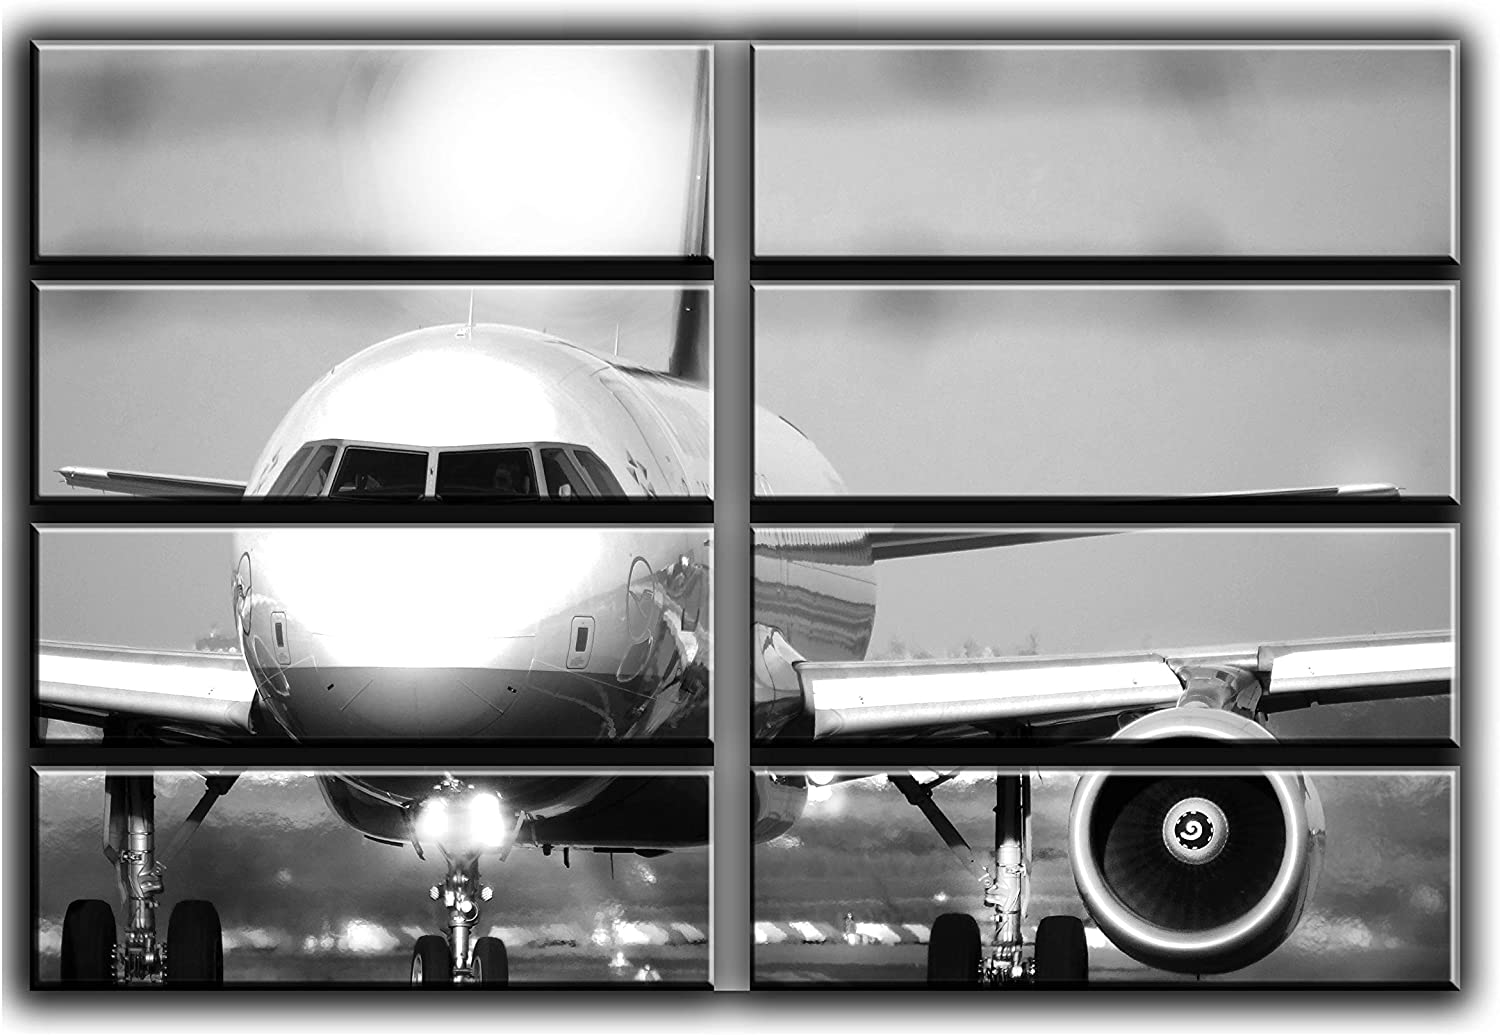 Huge 8 Piece Airplane Sale 2021new shipping free shipping Special Price Airbus A-320 P Picture Wall Art Decor